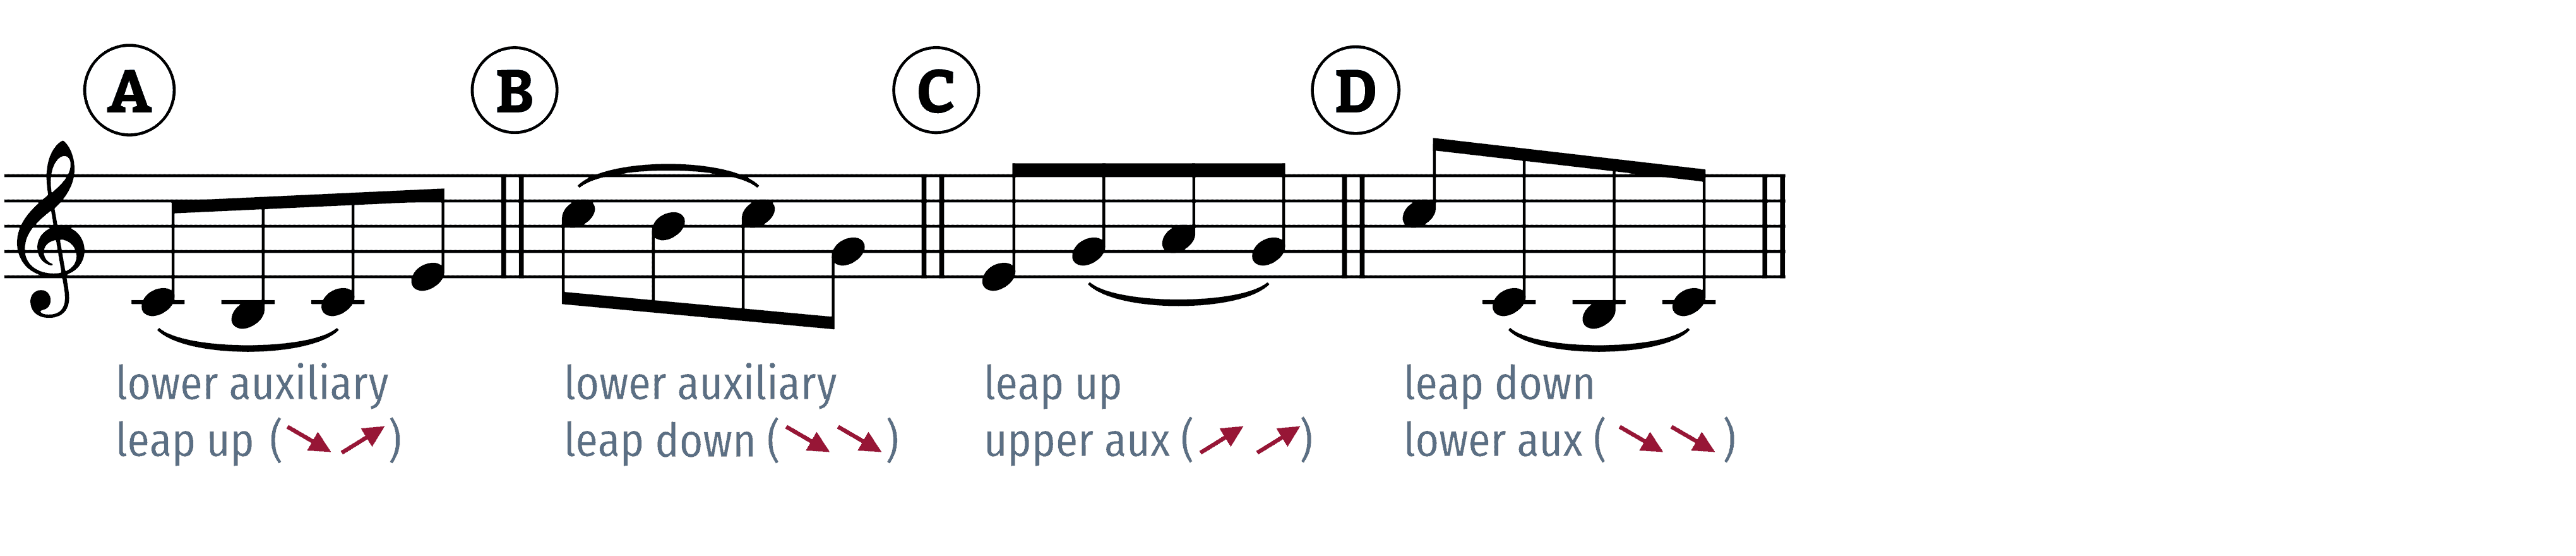 leaping-auxiliary-options